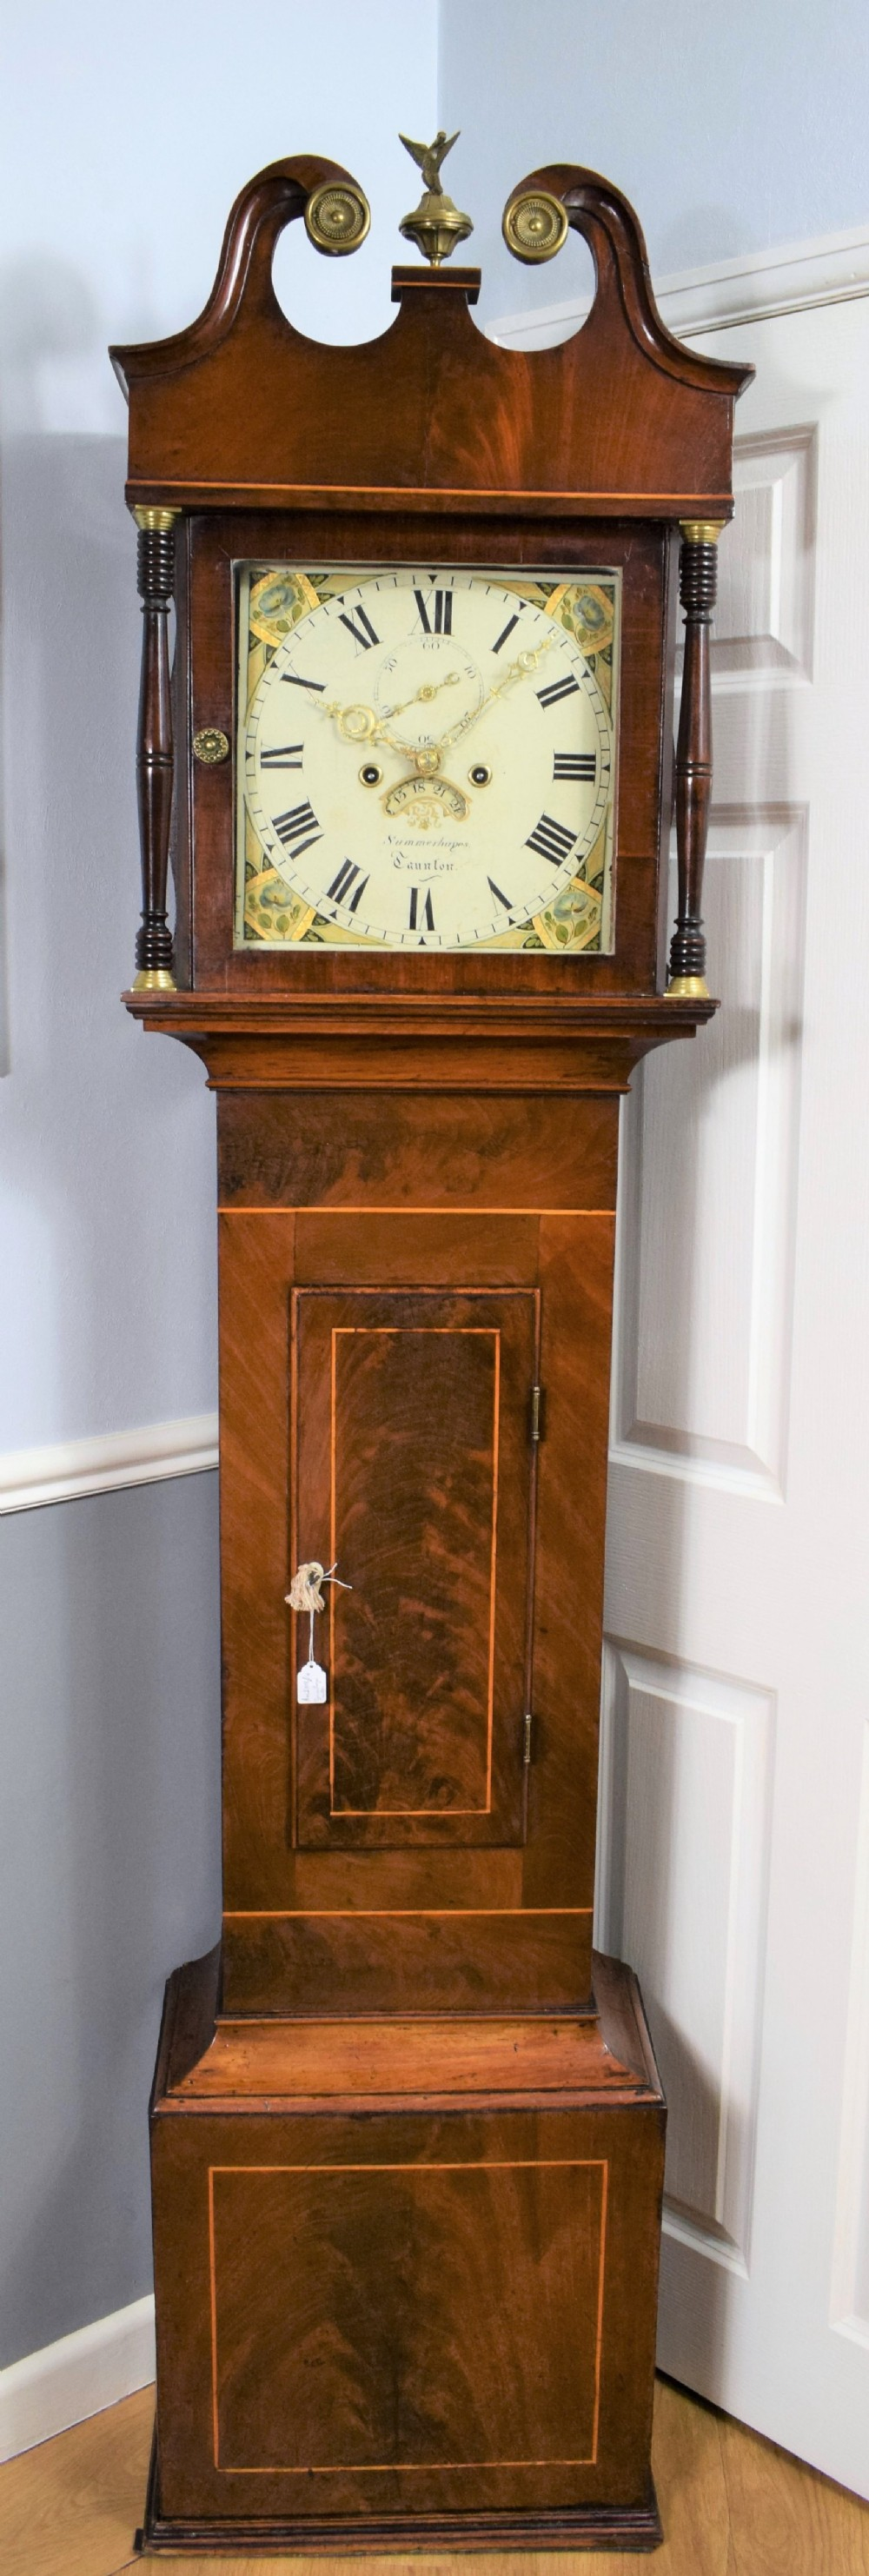 small early 19th century flame mahogany with satinwood inlay 8 day bell striking grandfather longcase clock by summerhayes of taunton